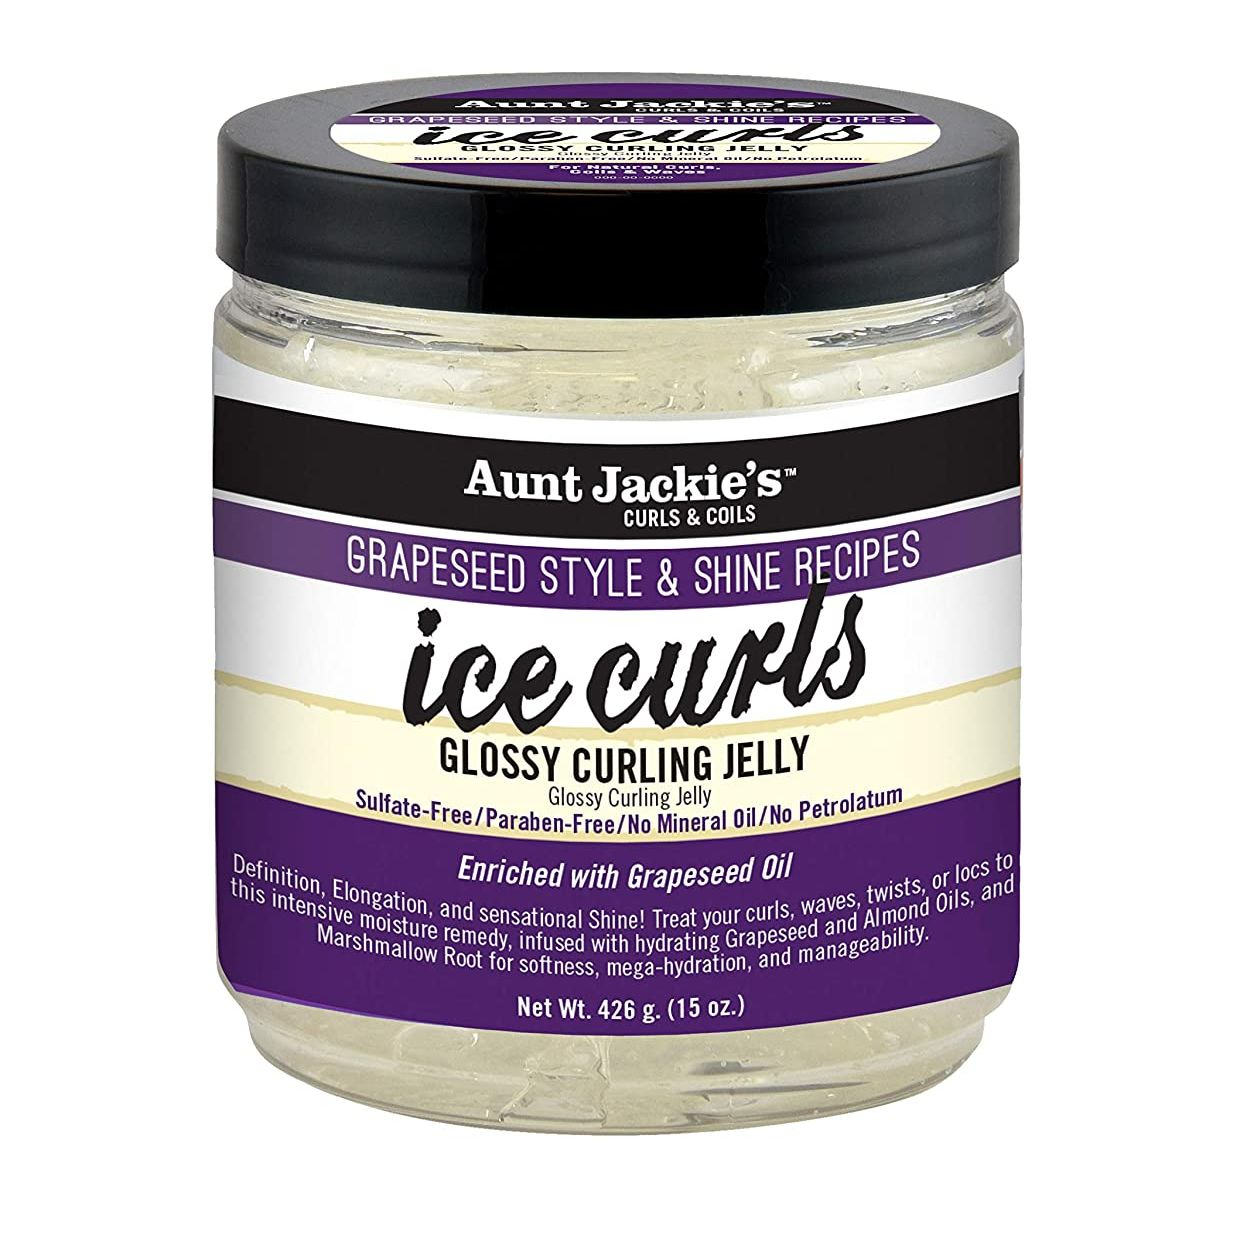 Aunt Jackie's ICE CURLS Glossy Curling Jelly